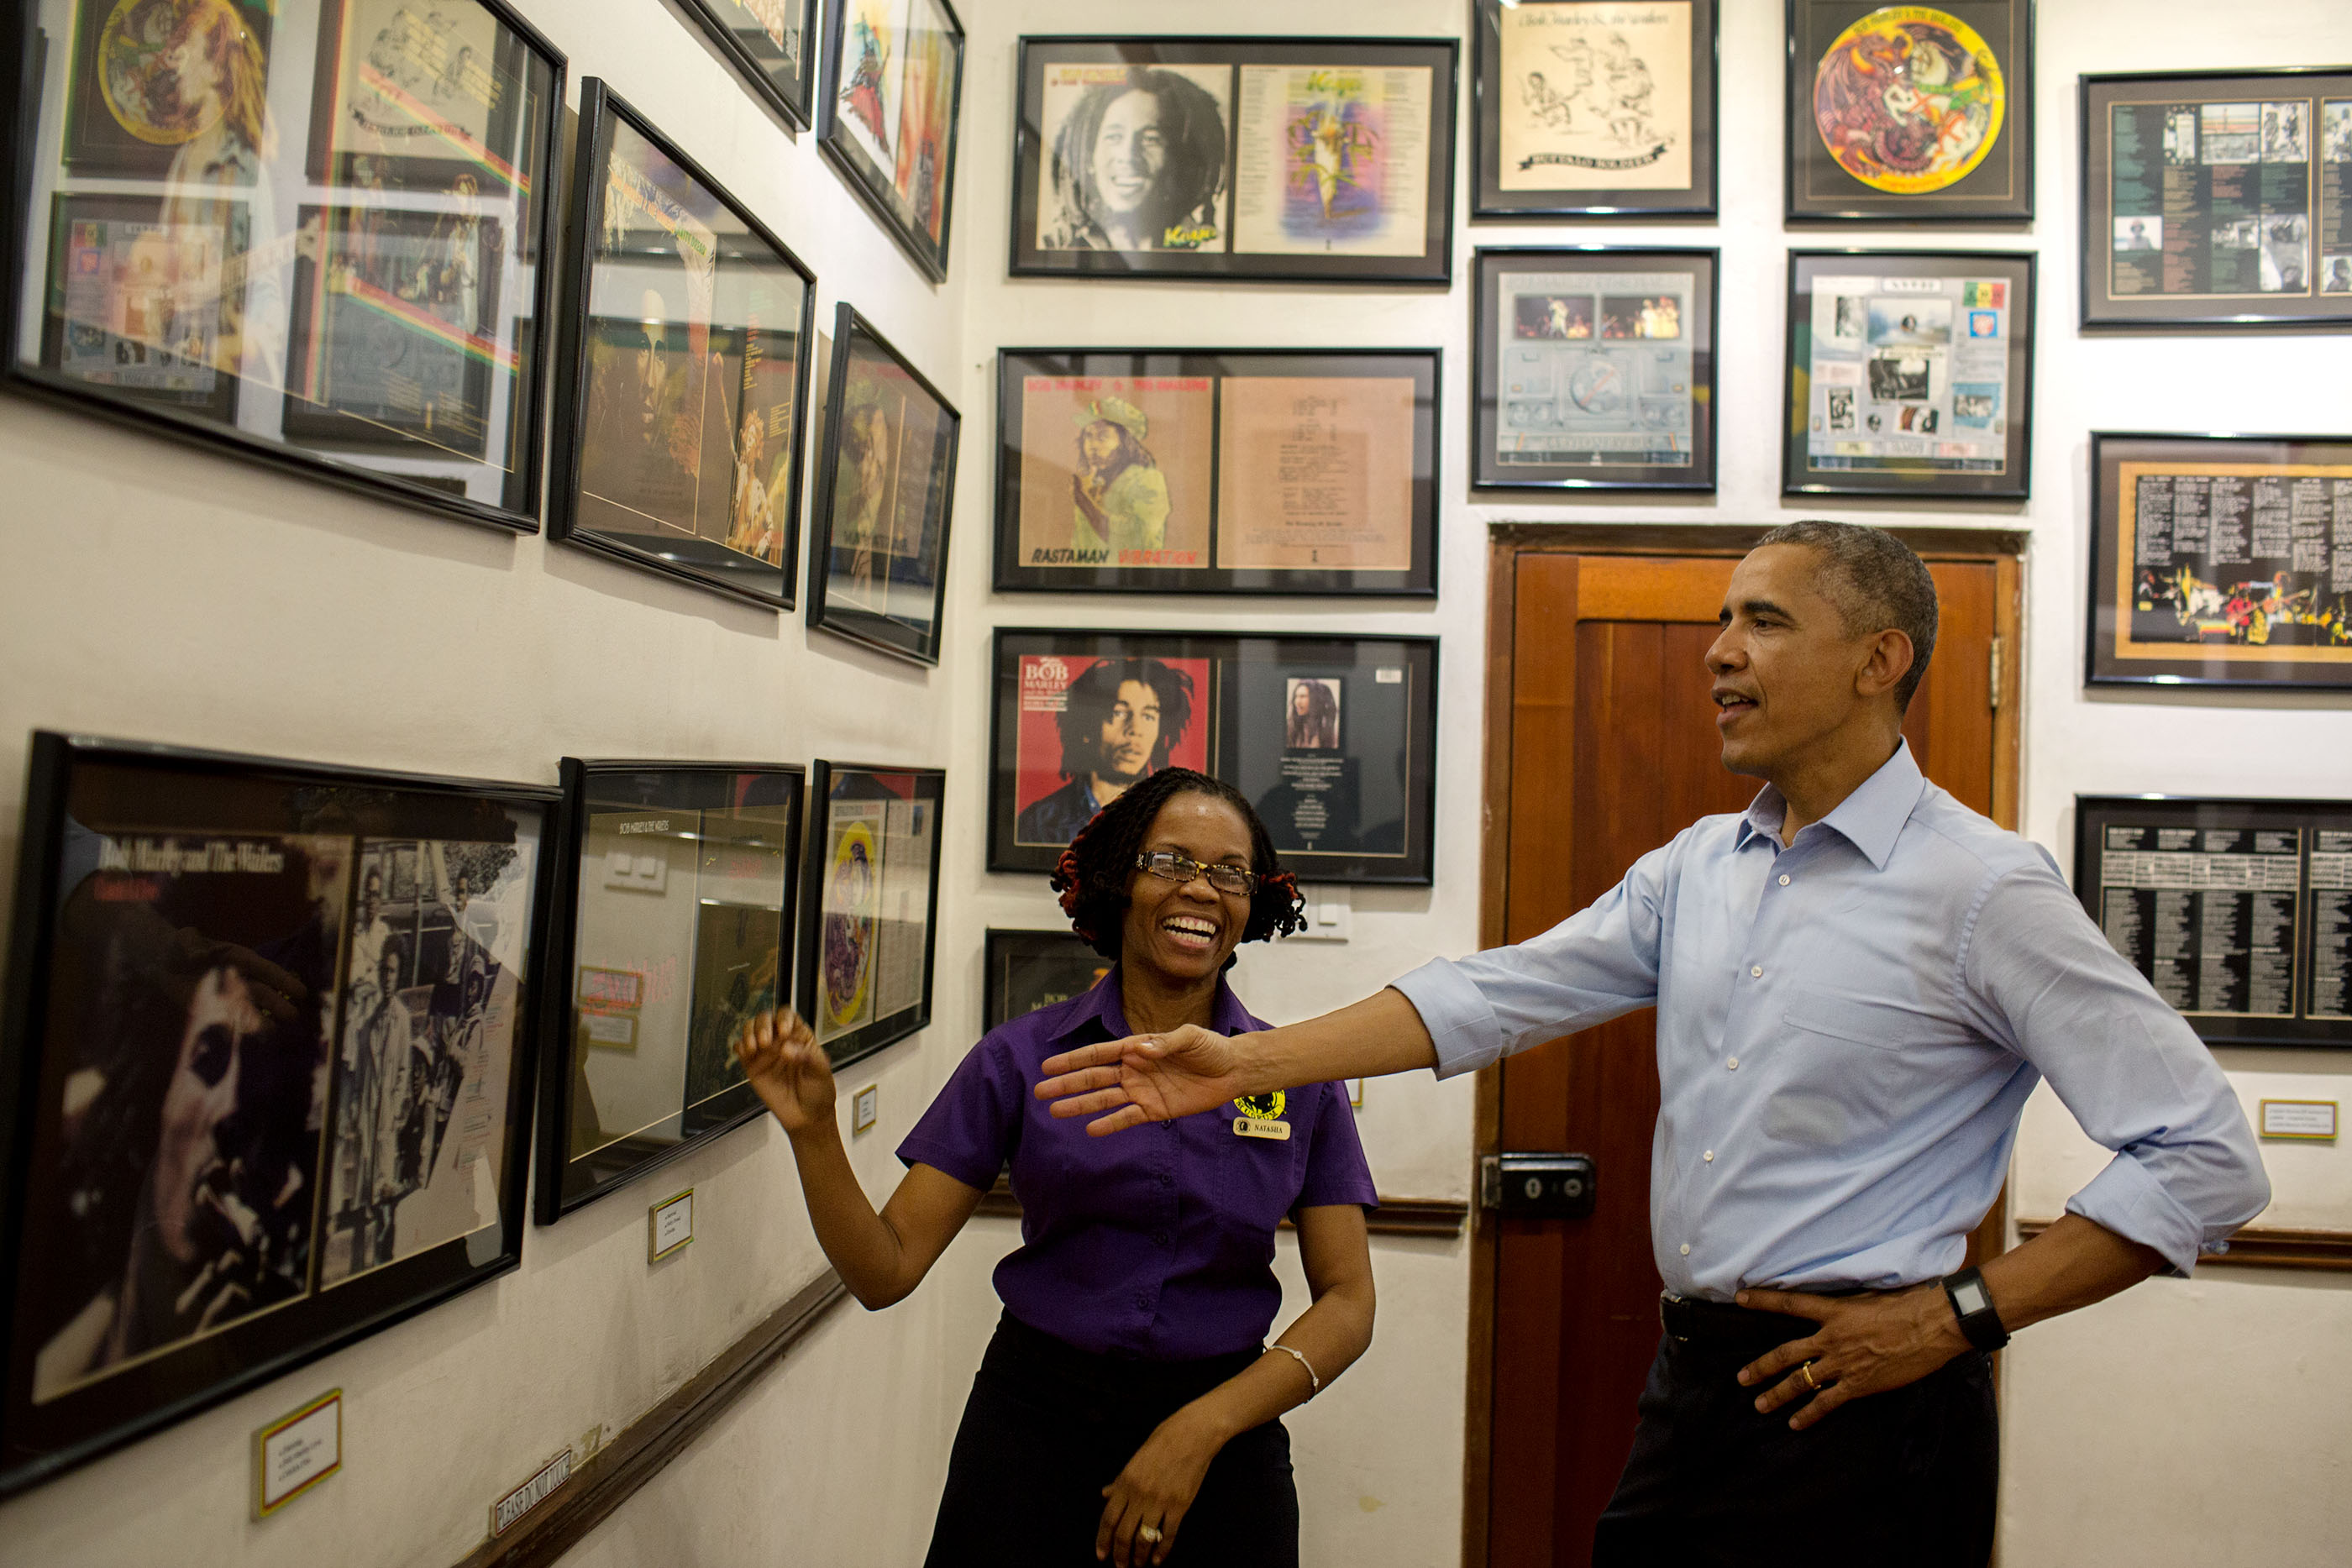 The President looks at memorabilia at the Bob Marley Museum during a tour with Natasha Clark.  (Official White House Photo by Pete Souza)